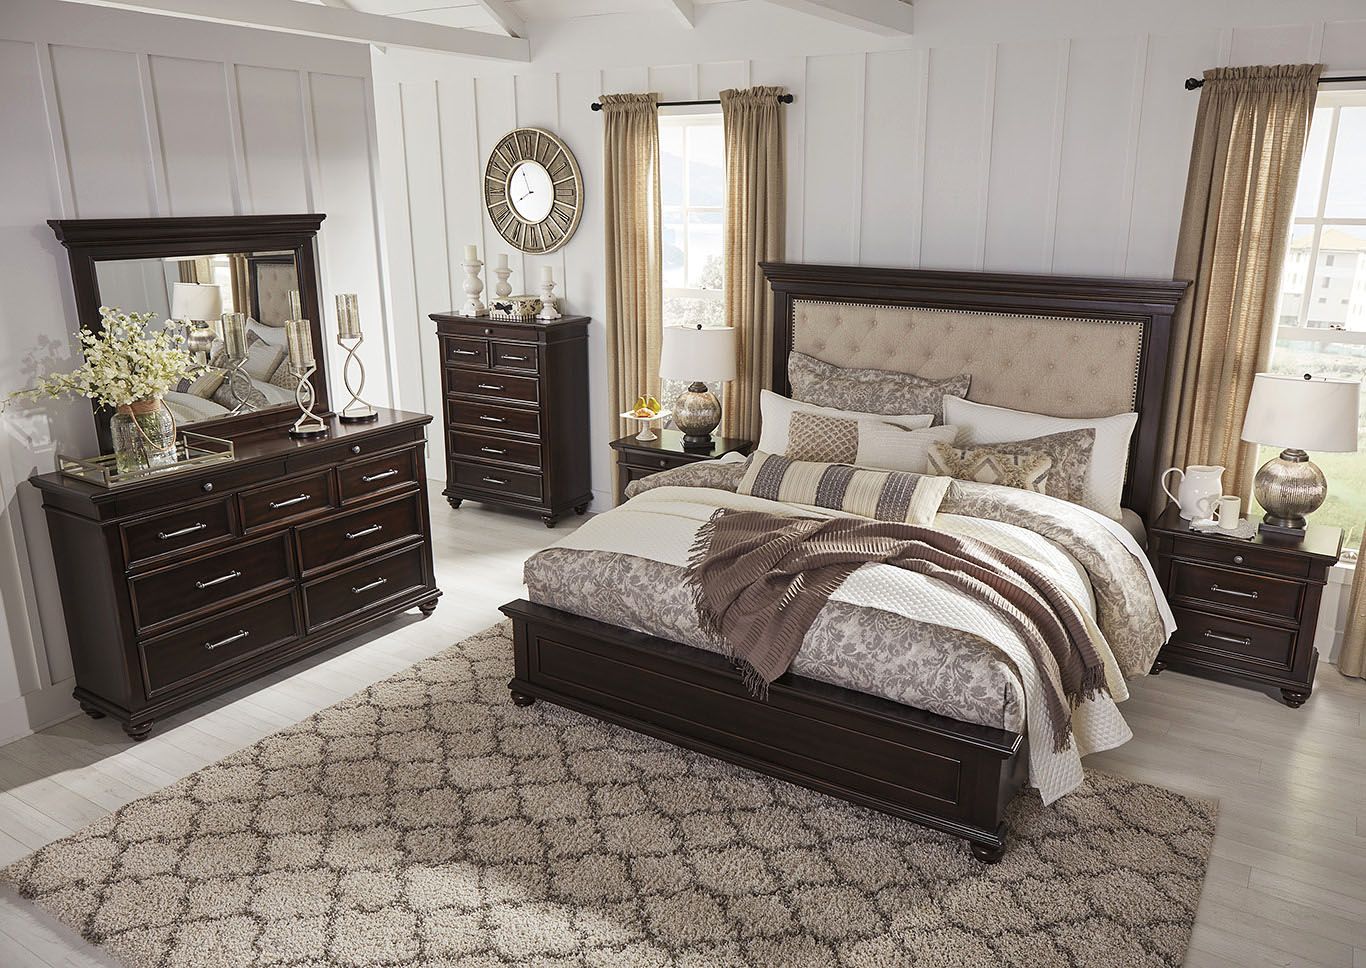 Brynhurst Brown California King Upholstered Panel Bed,Signature Design By Ashley